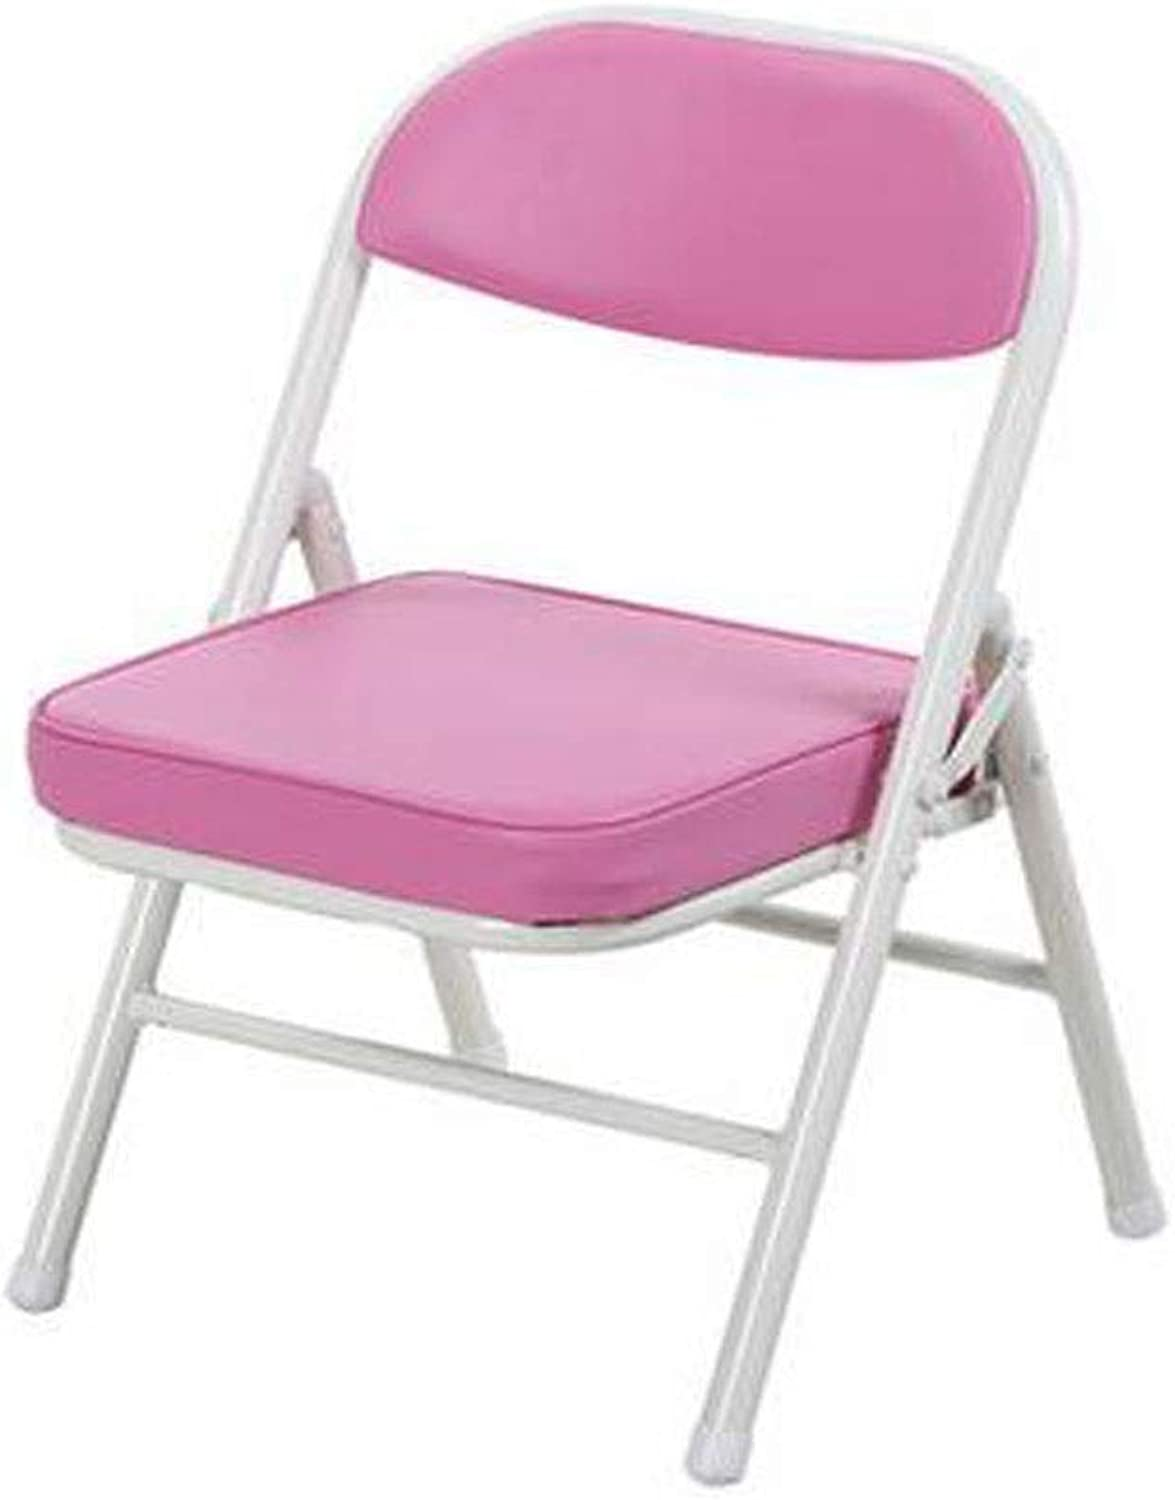 Folding Chair, color Portable Metal Chair, Suitable for Primary School Students to Learn to Write, Red (color   Pink, Size   52  33.5  30cm)